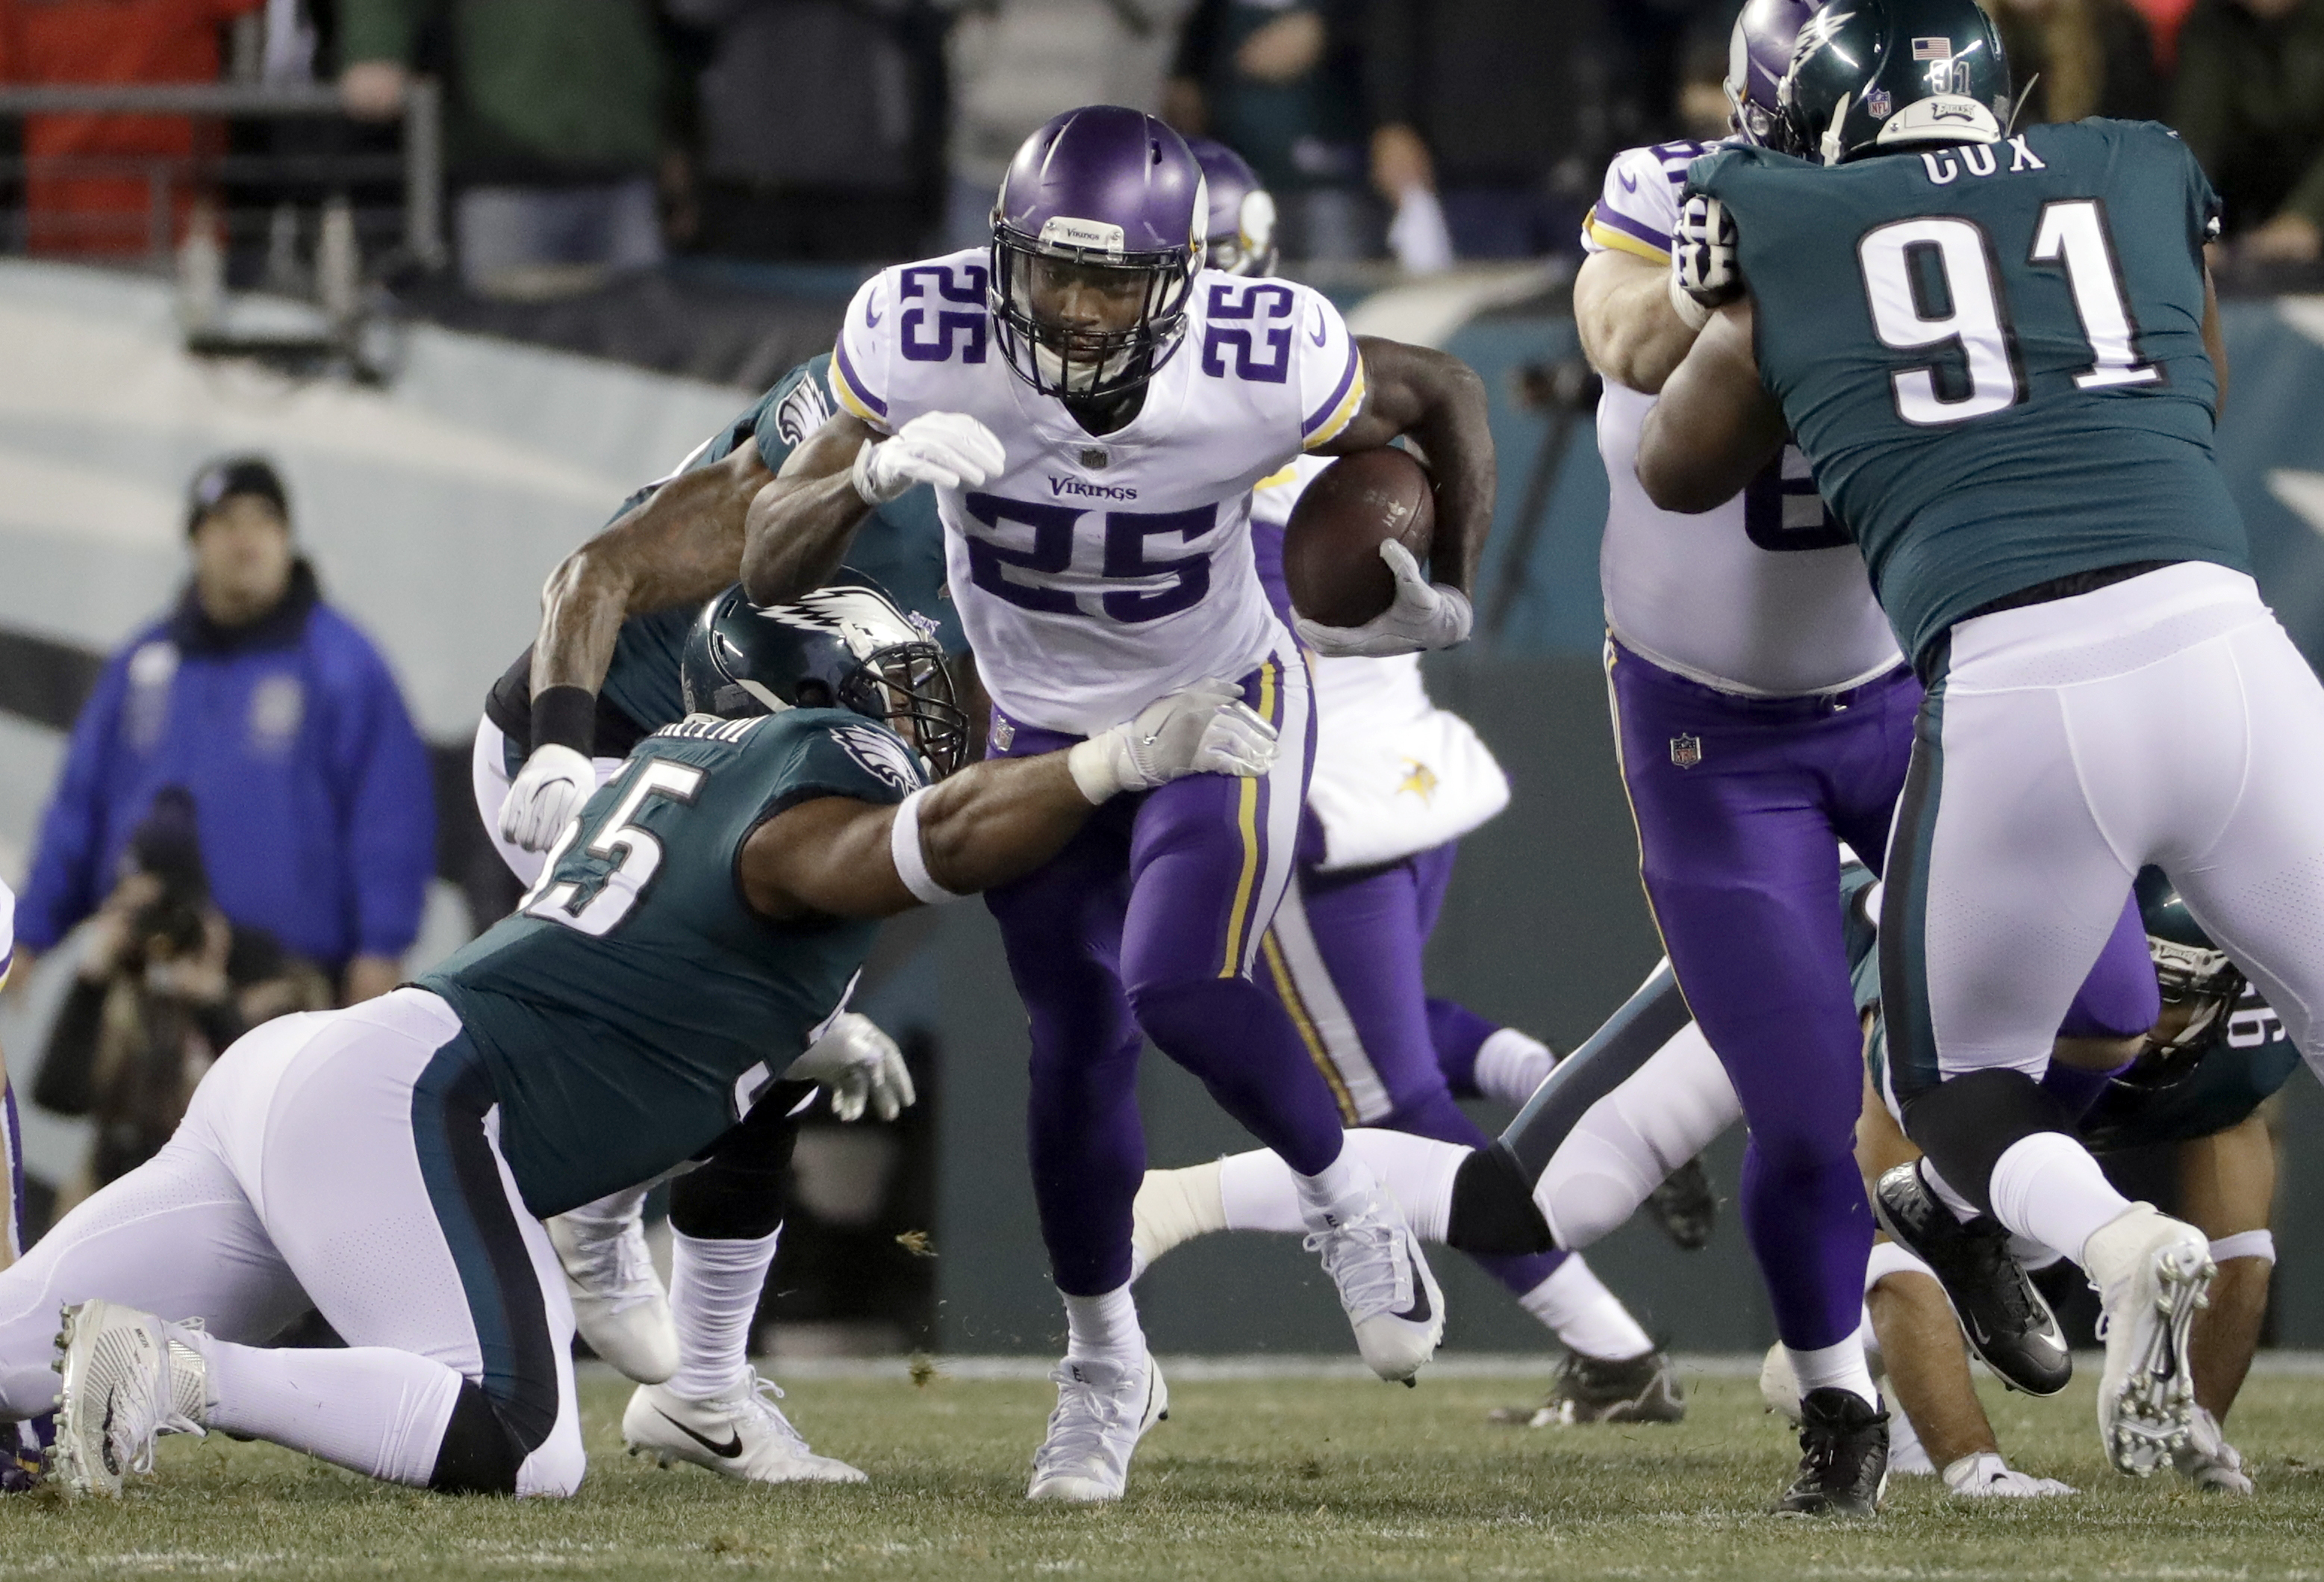 "<div class=""meta image-caption""><div class=""origin-logo origin-image ap""><span>AP</span></div><span class=""caption-text"">Minnesota Vikings' Latavius Murray runs during the first half of the NFL football NFC championship game against the Philadelphia Eagles Sunday, Jan. 21, 2018, in Philadelphia. (APAP Photo/Matt Slocum)</span></div>"